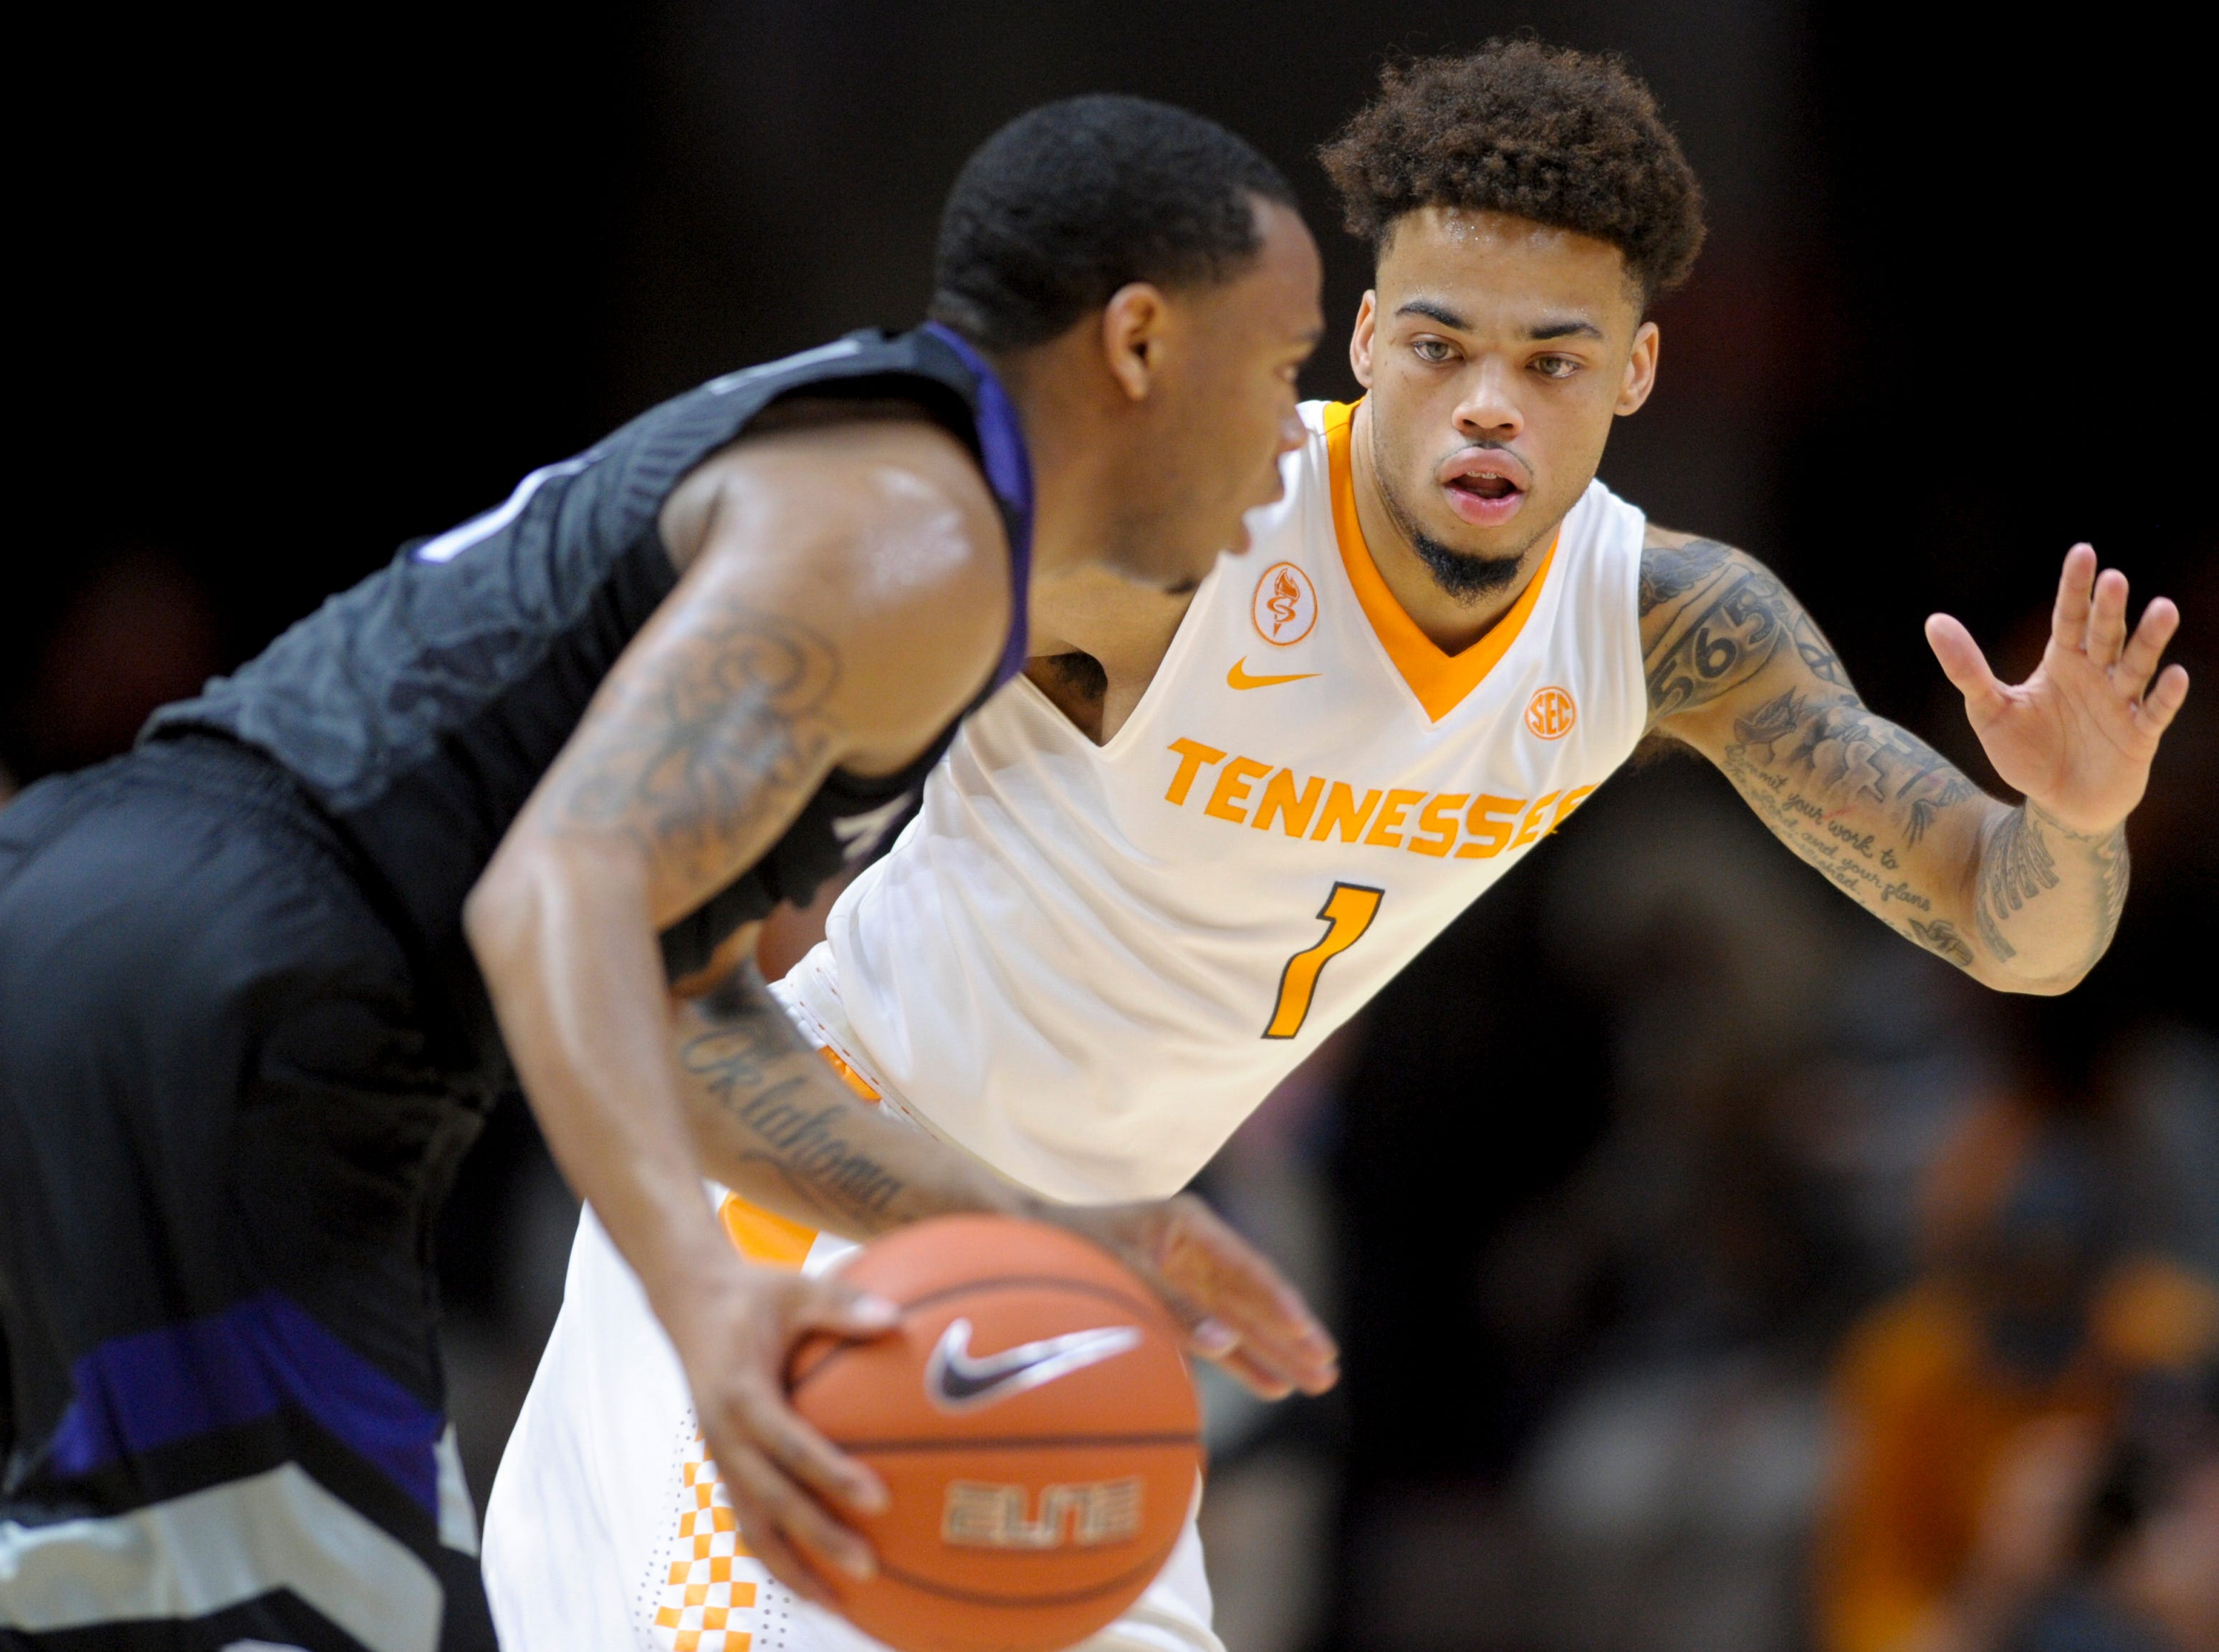 TennesseeÕs LamontŽ Turner (1) defends against Kansas StateÕs Carlbe Ervin II (1) during an NCAA SEC-Big 12 basketball game between Tennessee and Kansas State at Thompson-Boling Arena in Knoxville, Tennessee on Saturday, January 28, 2017.